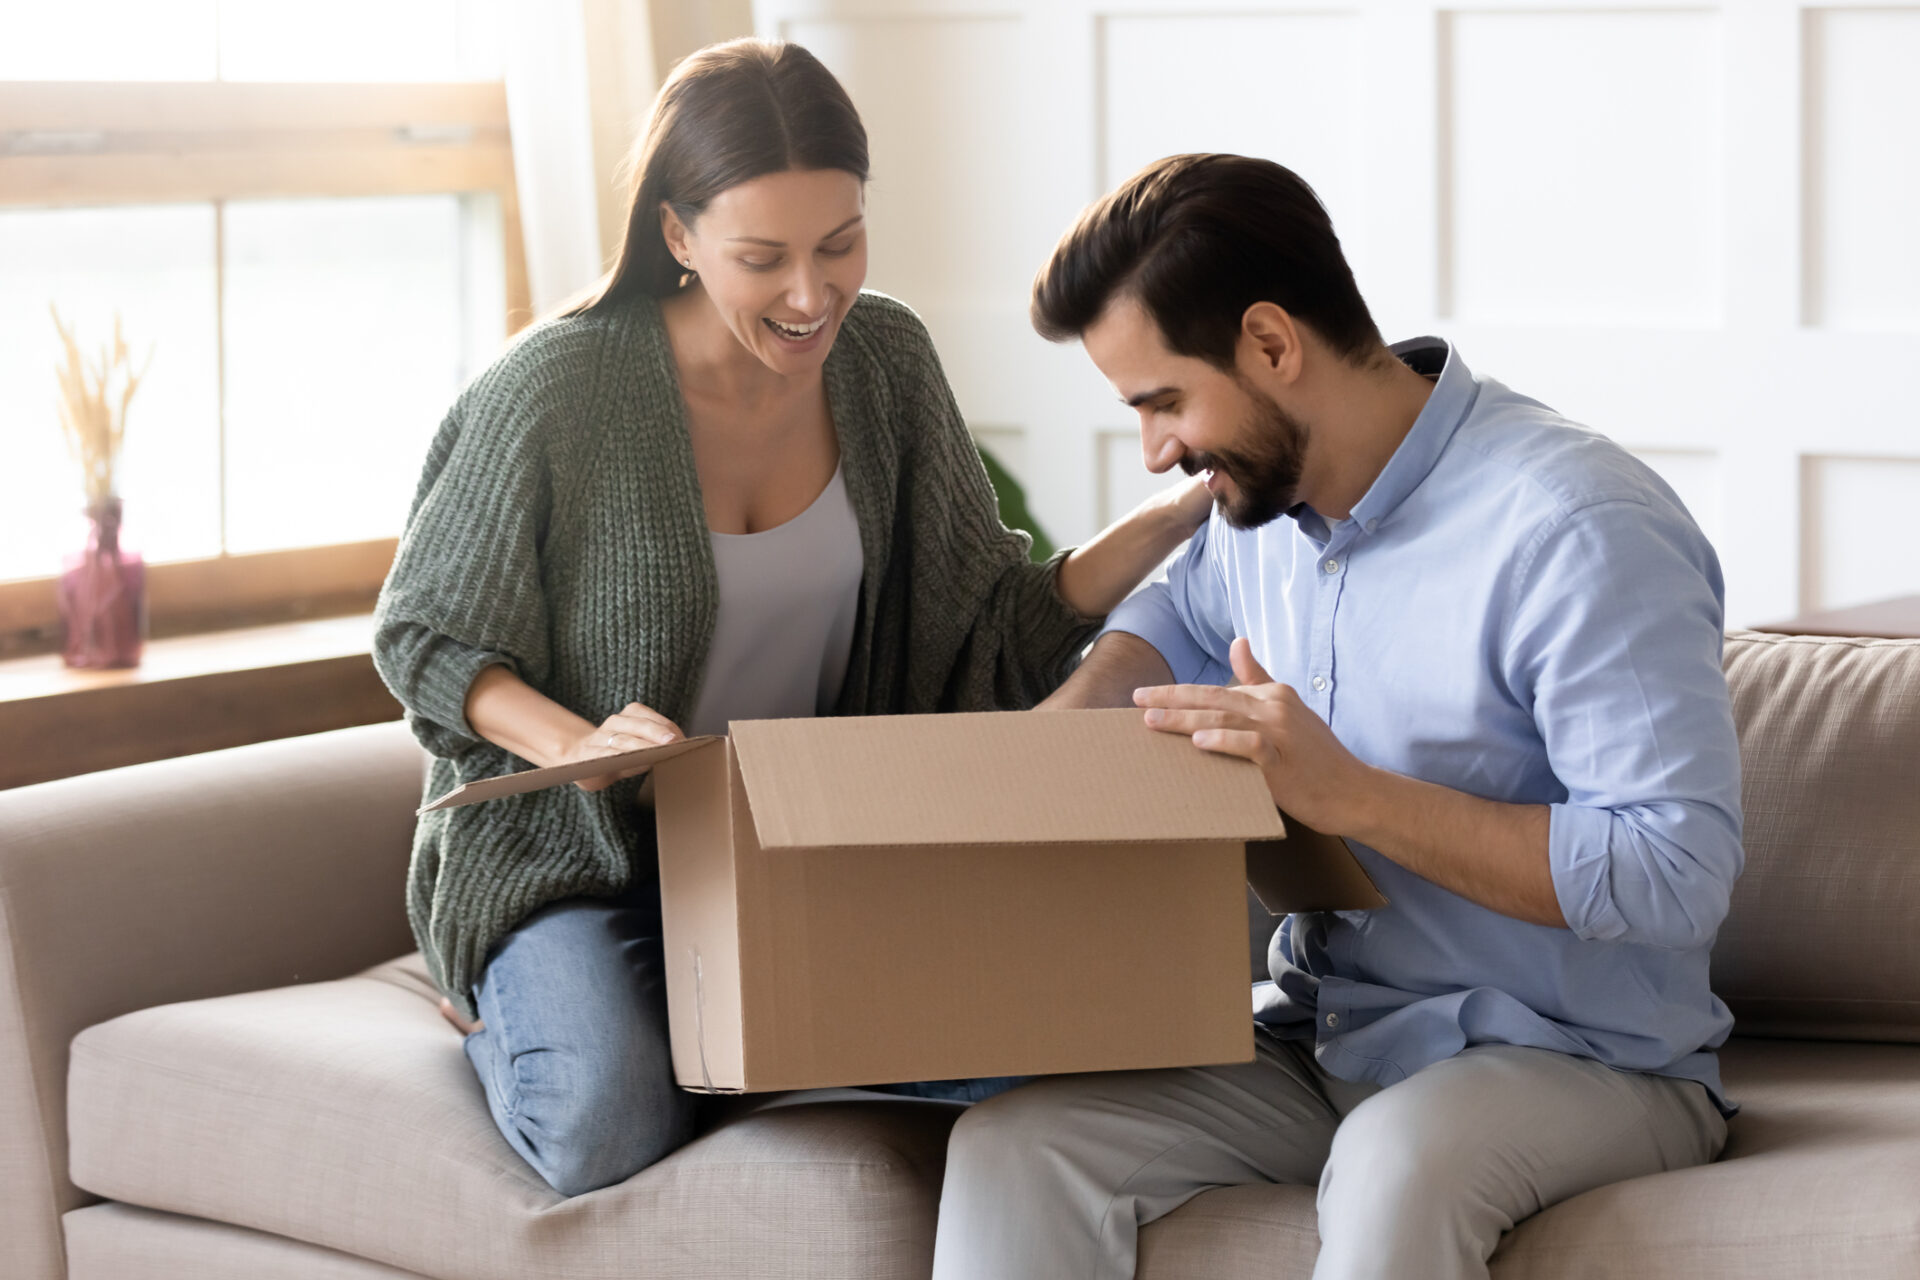 Overjoyed young married couple unpacking cardboard box at home.